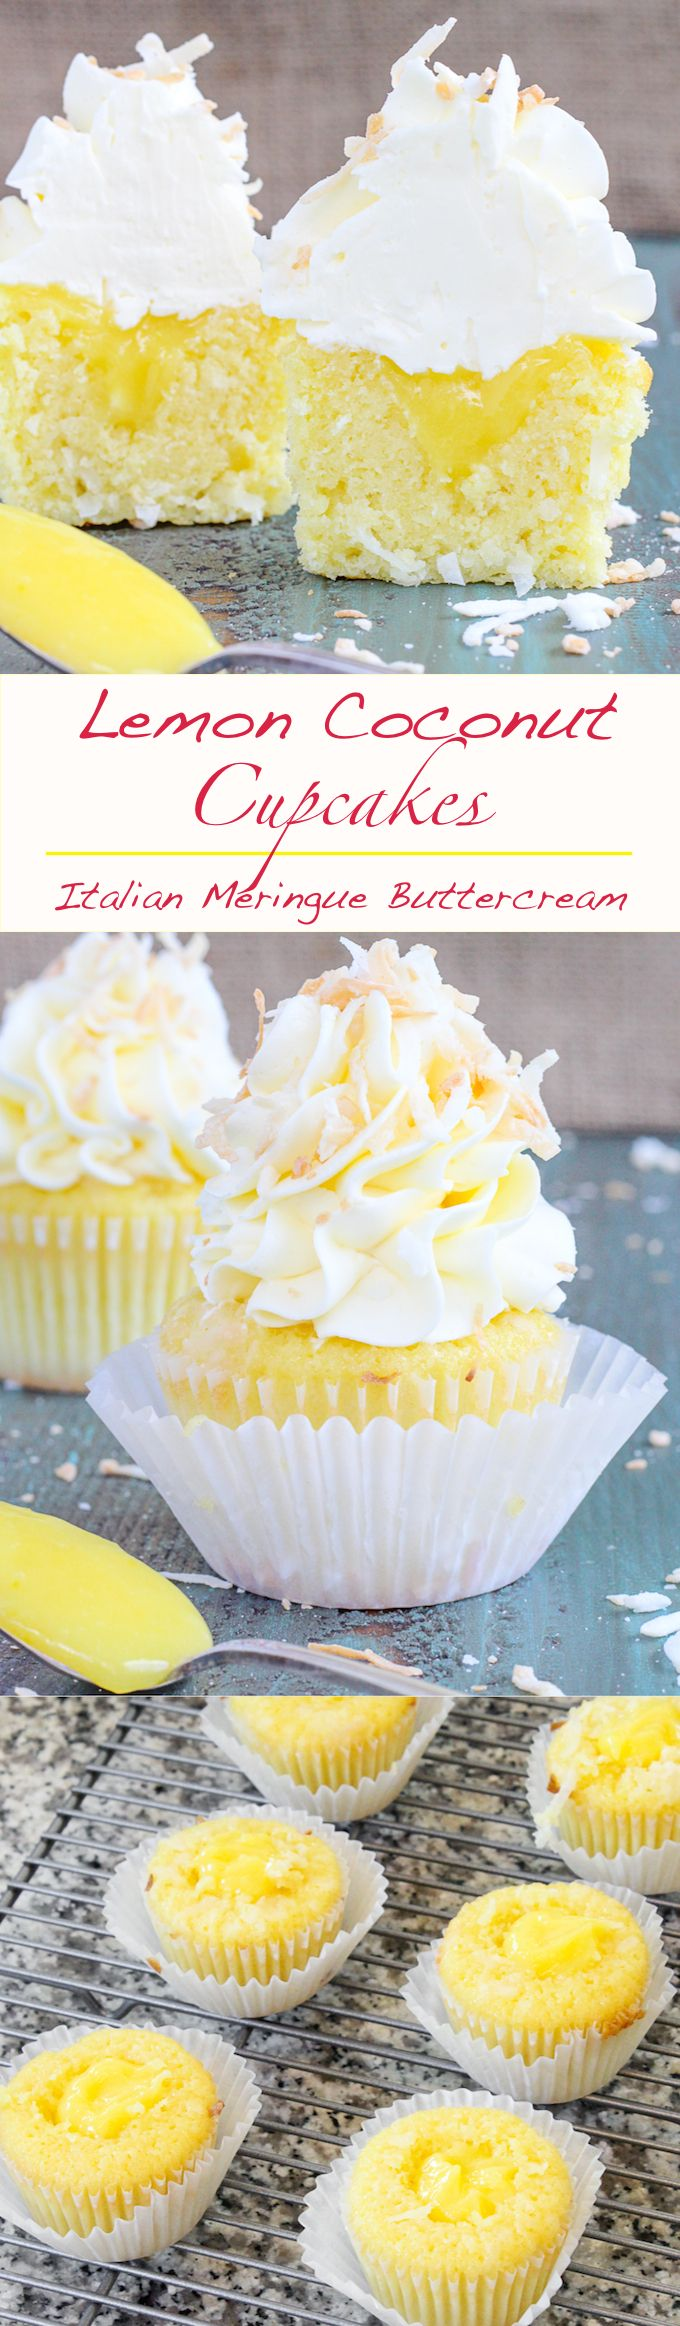 These Lemon Coconut Cupcakes have a moist coconut cake, a sweet, tart lemon curd filling and are topped with a lemon Italian meringue buttercream!: